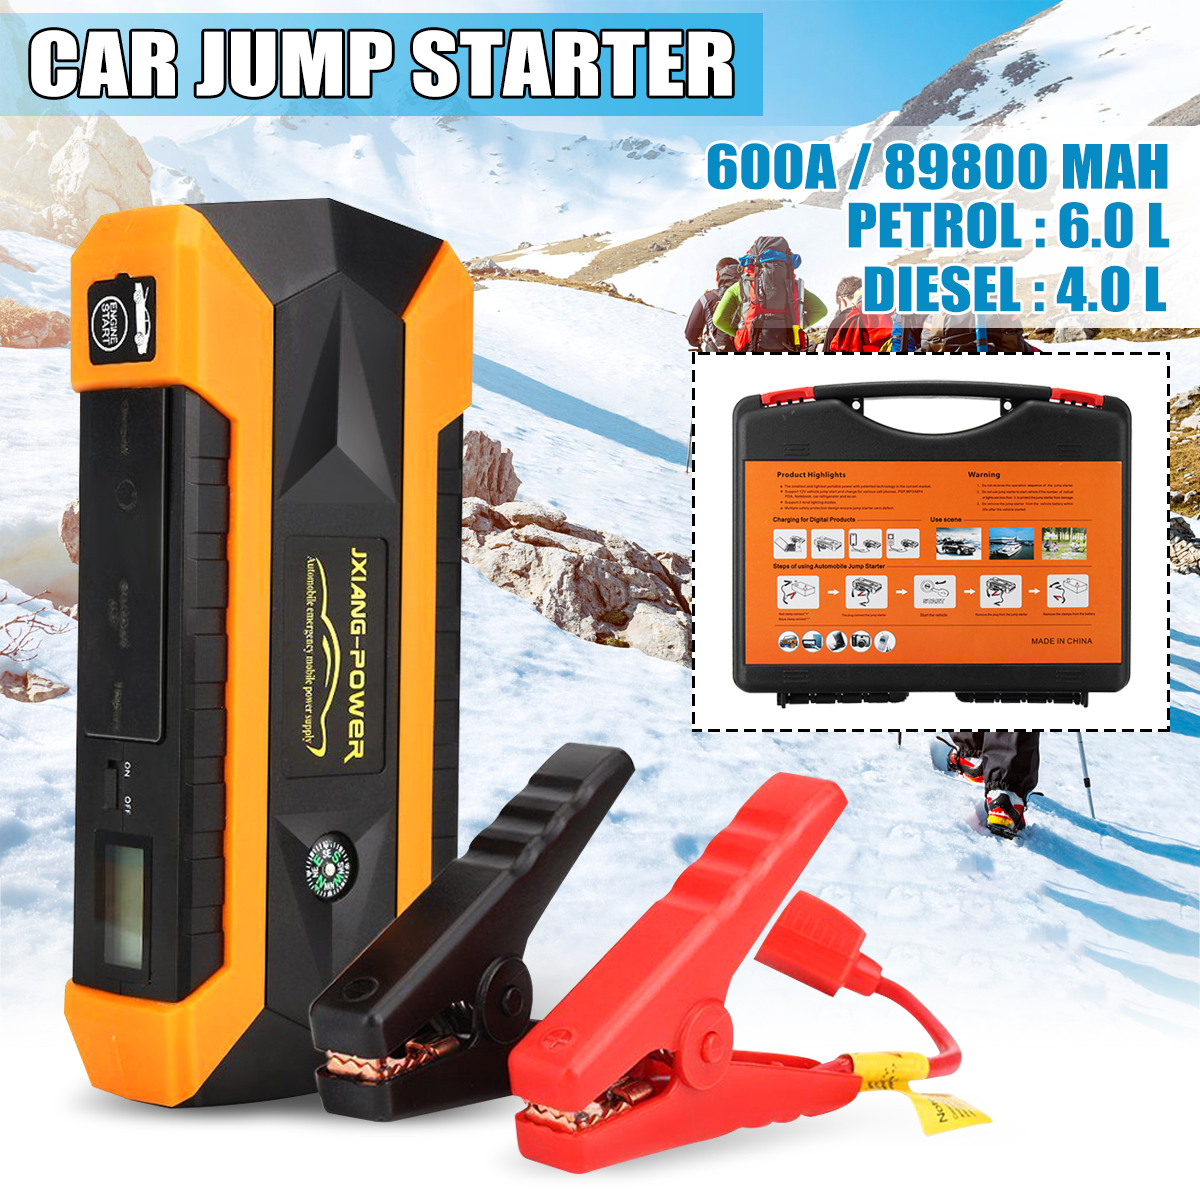 1set 89800mAh 12V 4USB Car Battery Charger Starting Car Jump Starter Booster Power Bank Tool Kit For Auto Starting Device 89800mah led emergency car jump starter 12v 4usb charger battery power bank portable car battery booster charger starting device